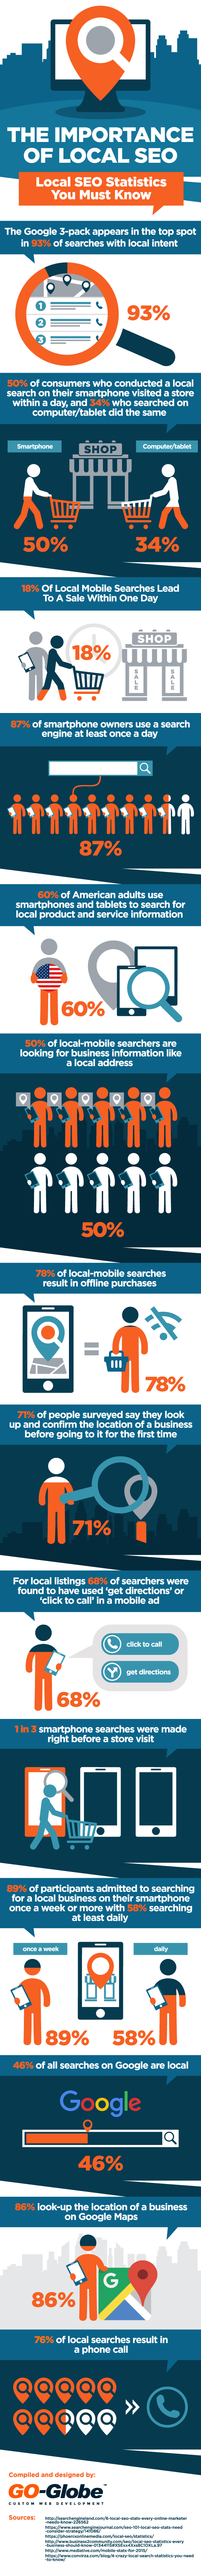 The importance of Local SEO #Infographic